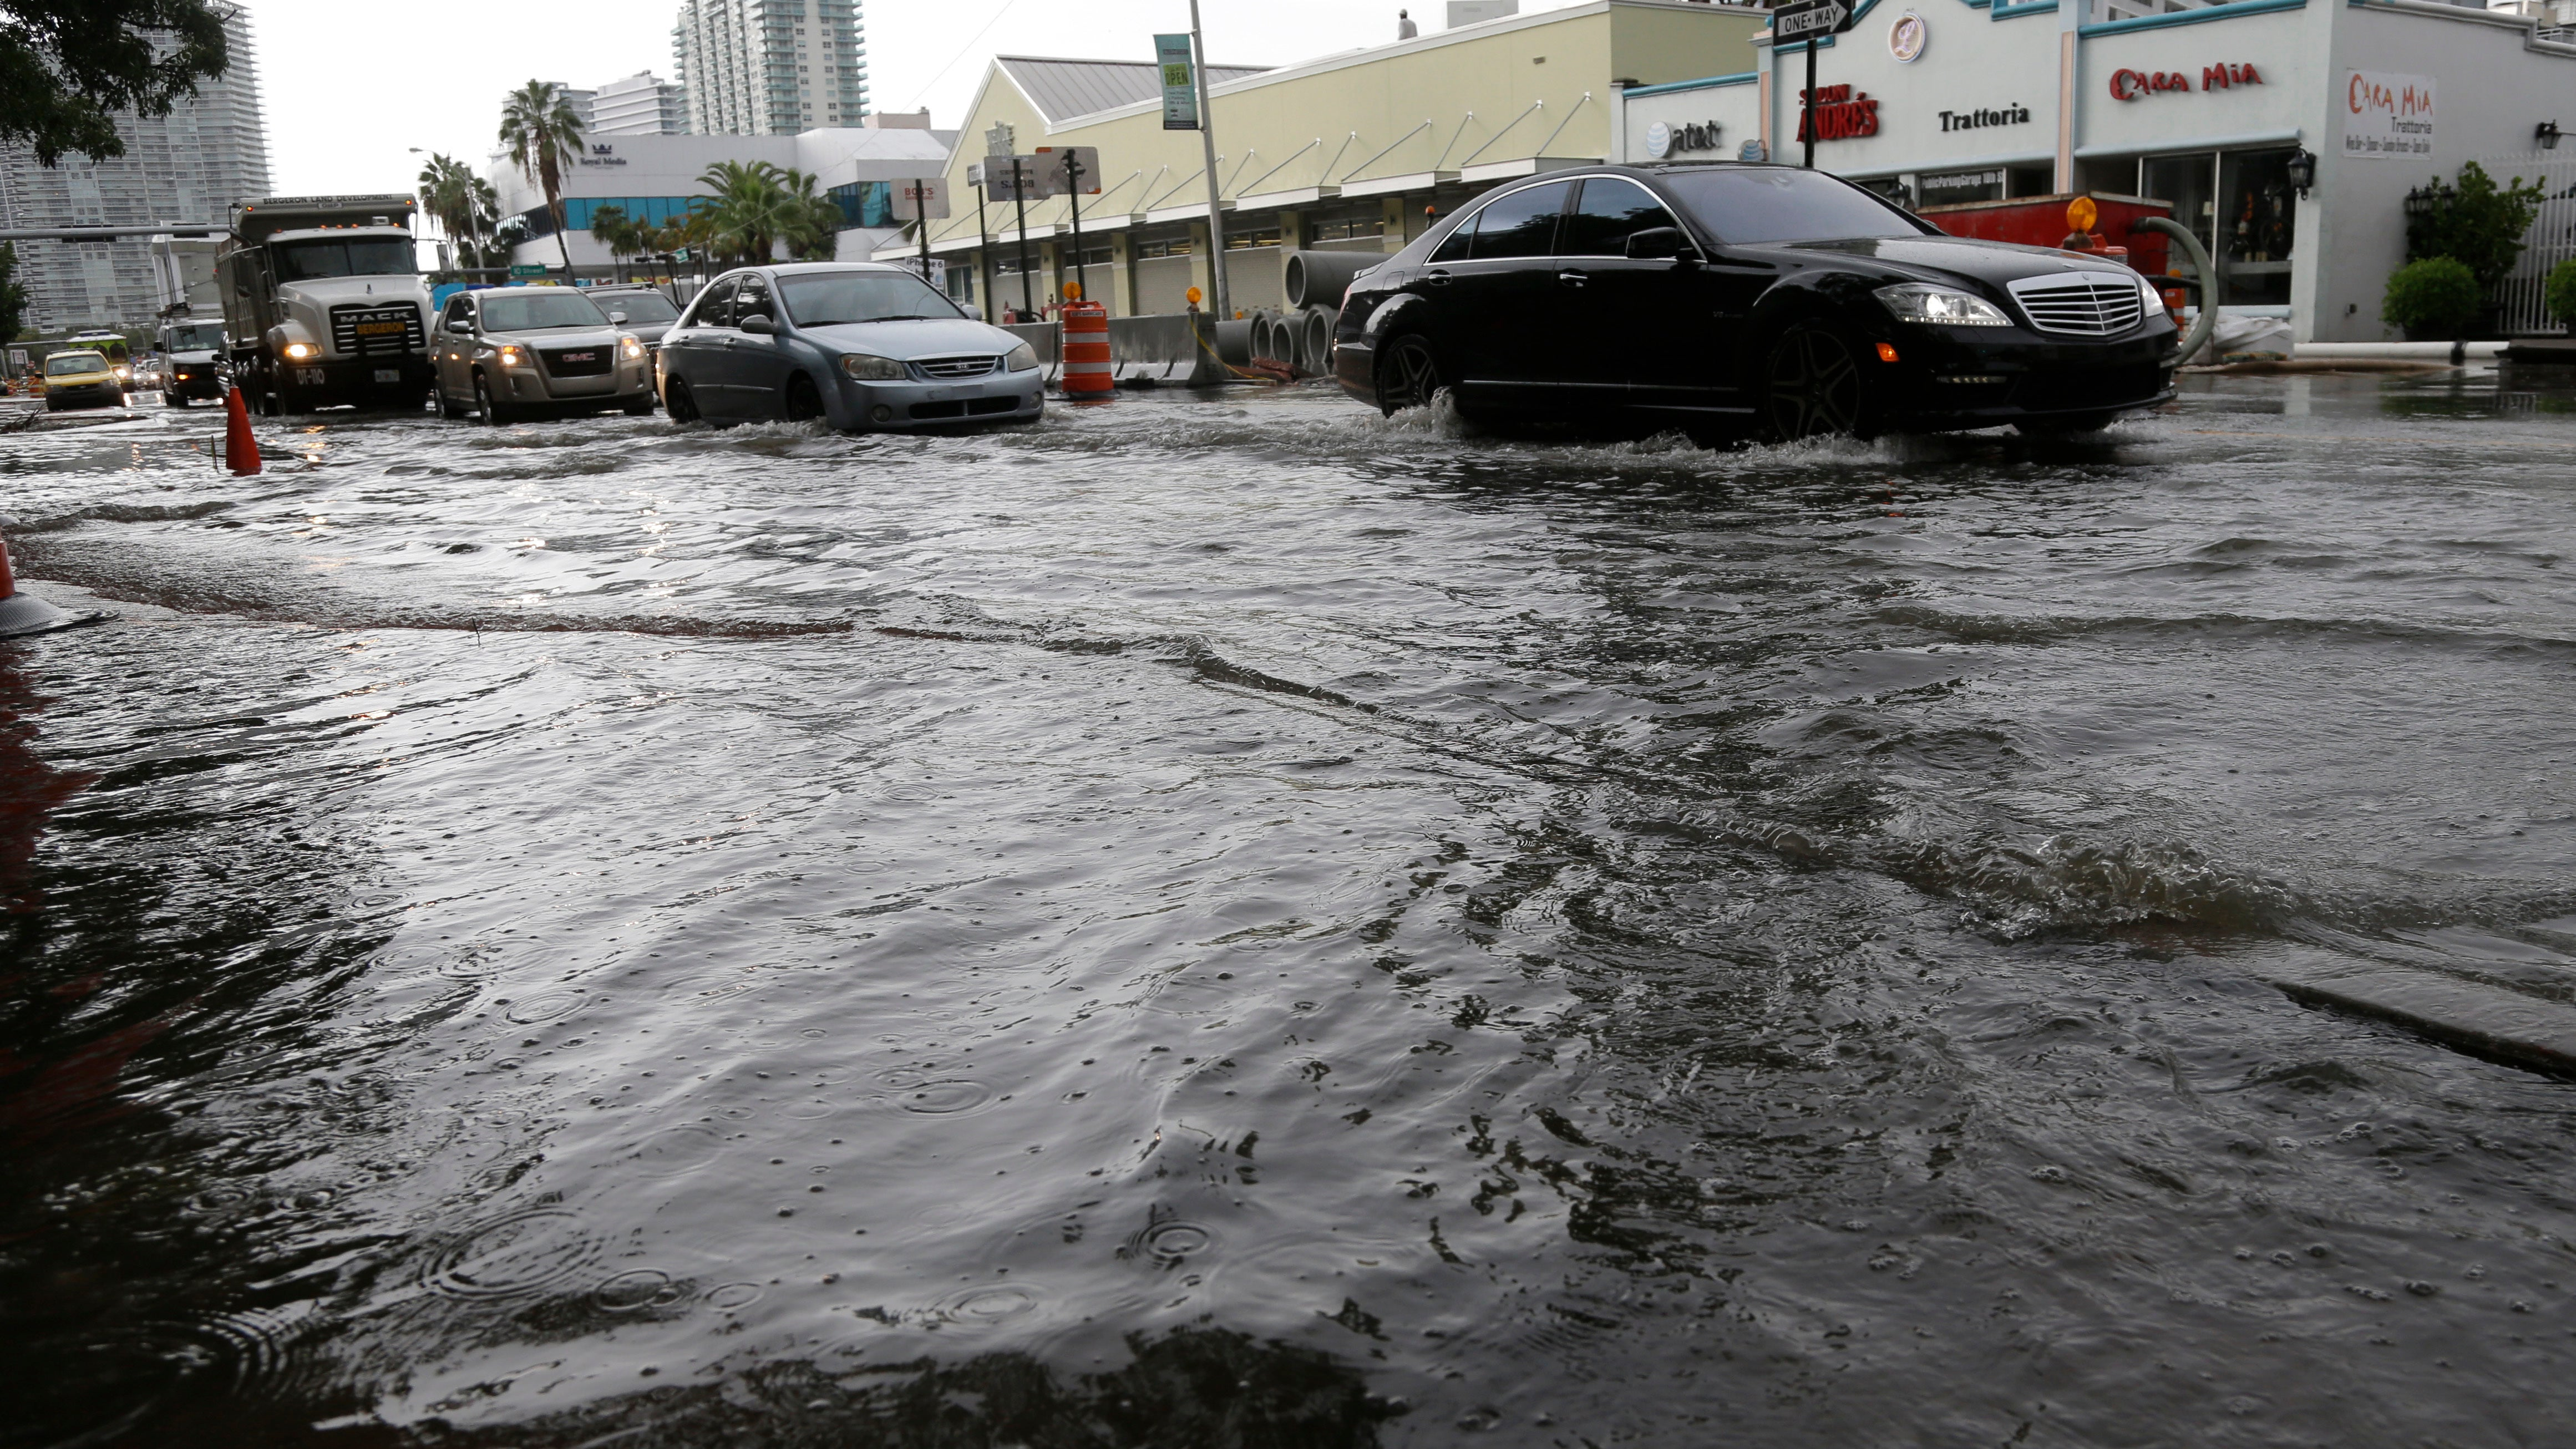 Why Are Sea Levels Around Miami Rising So Much Faster Than Other Places?